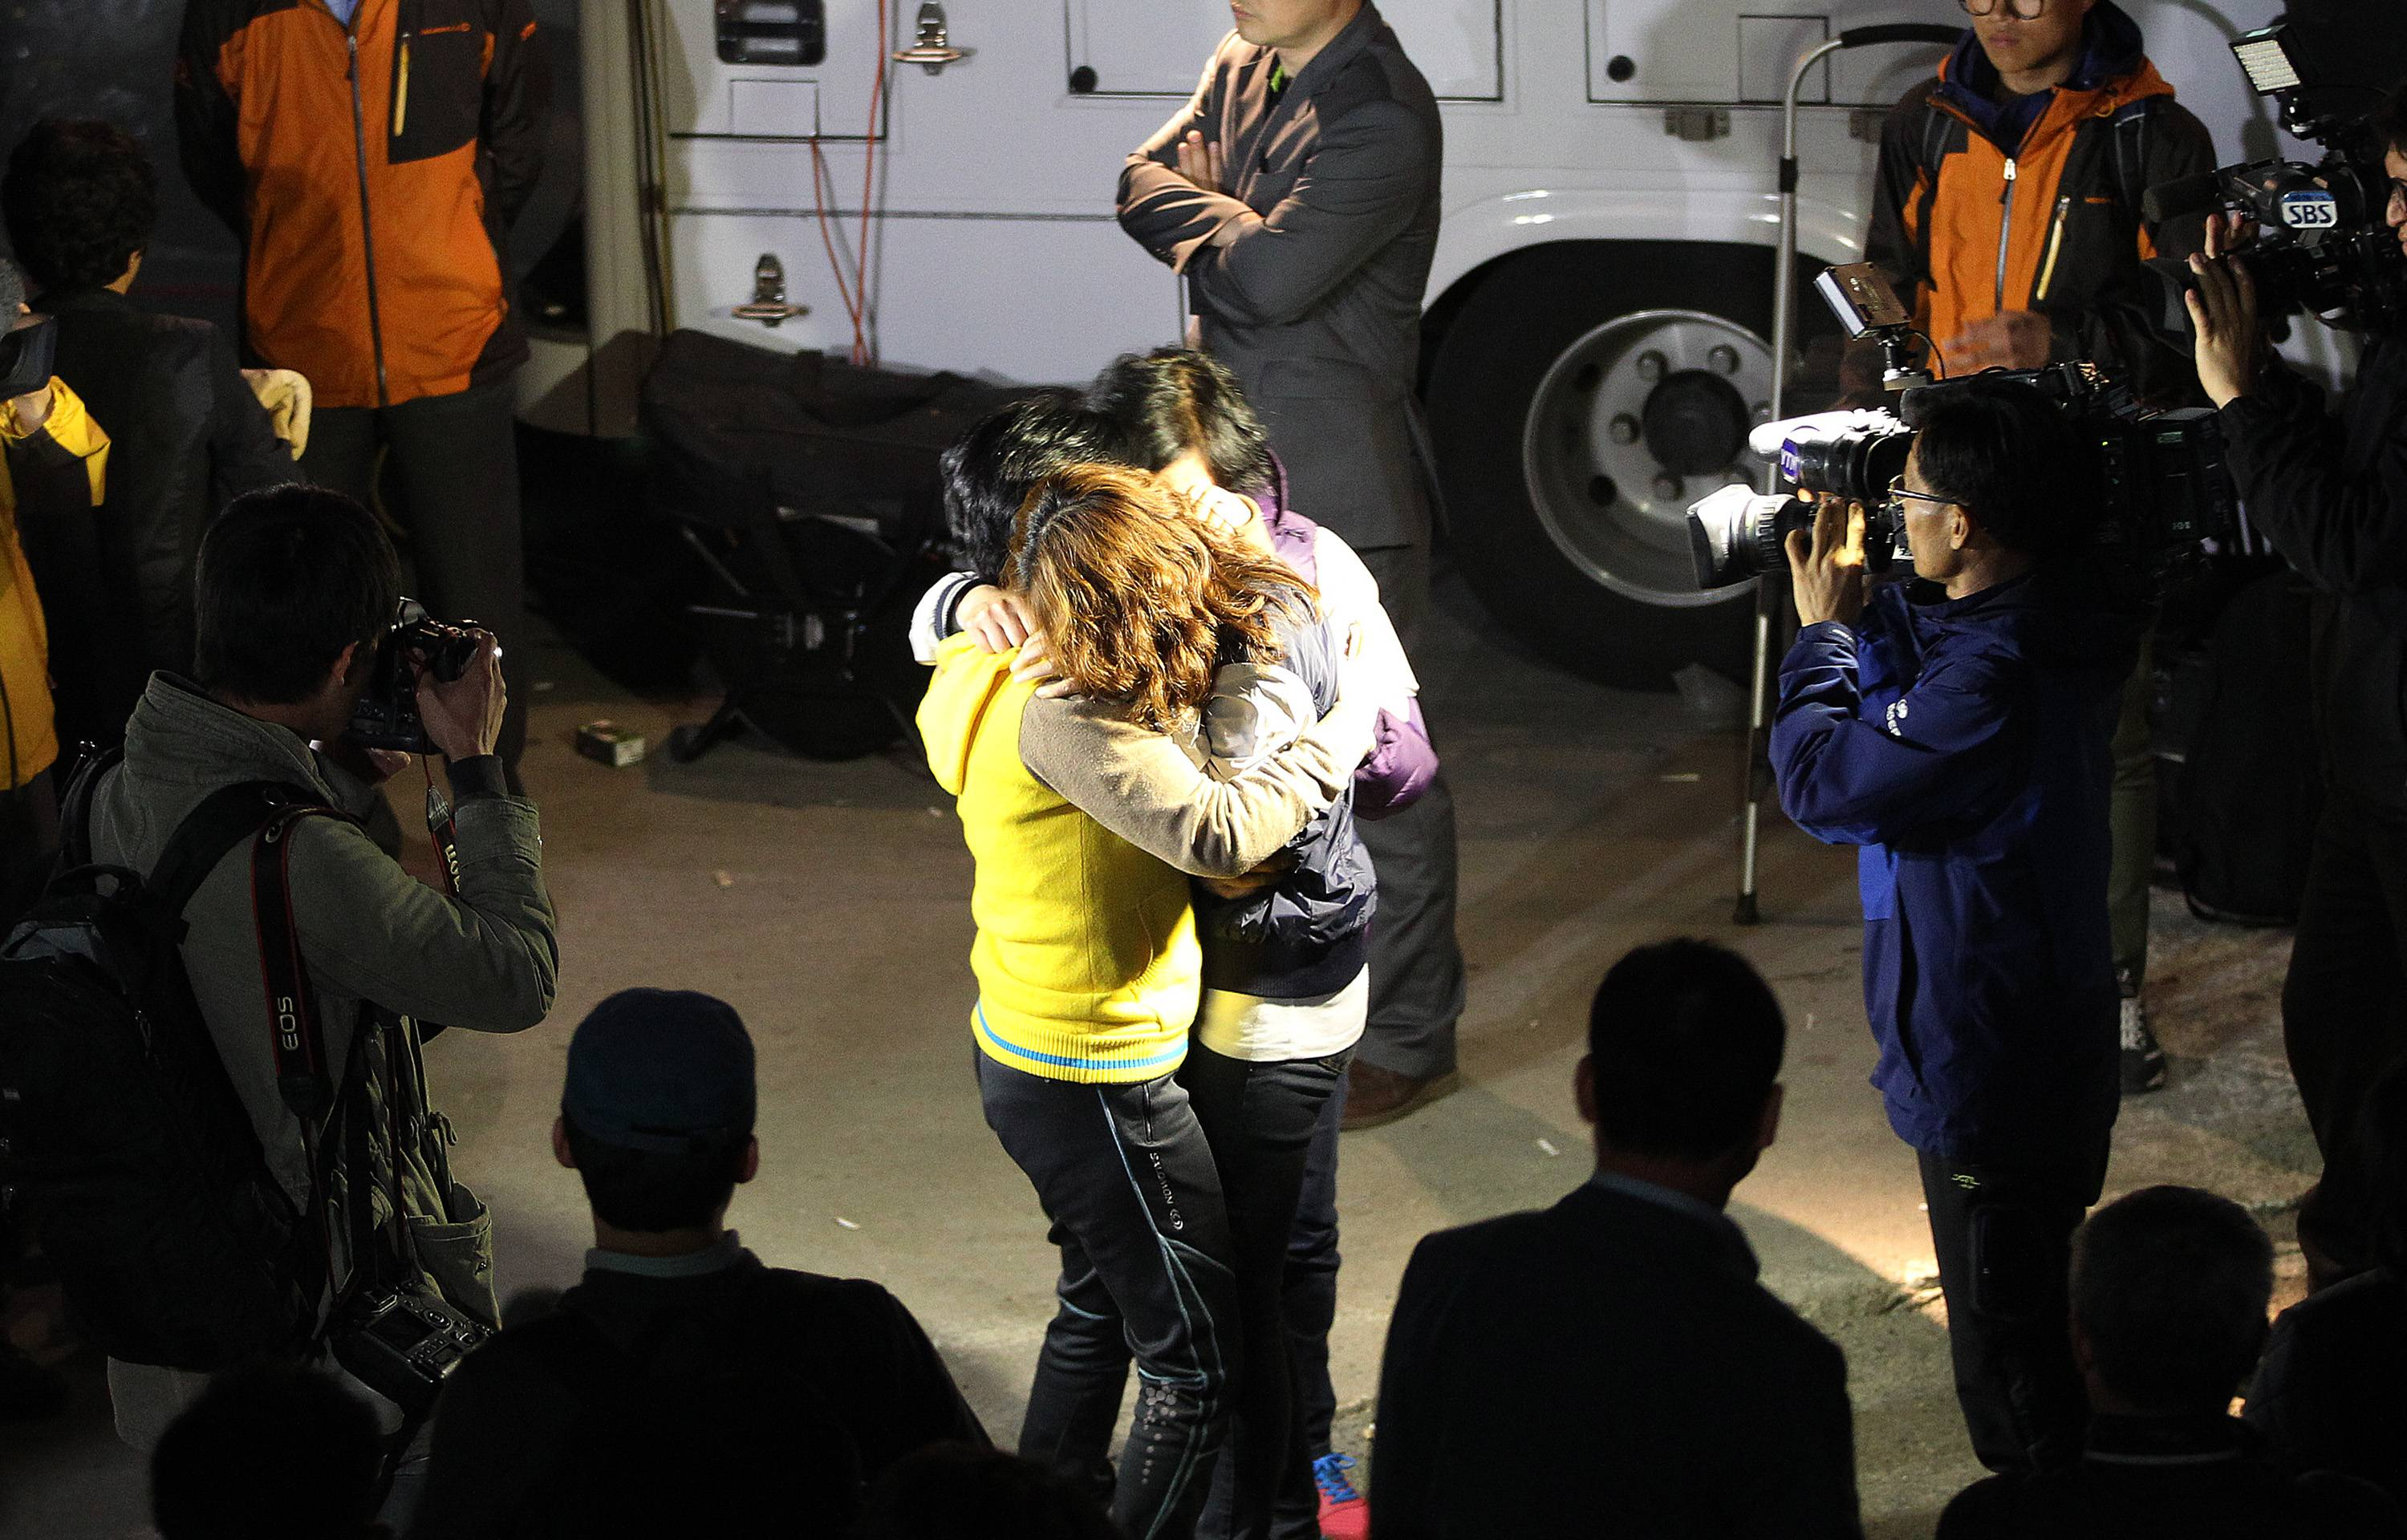 Relatives hug each other as they wait for missing people at a port in Jindo, South Korea, Wednesday, April 16, 2014. A South Korean passenger ship carrying more than 470 people, including many high school students, sunk off the country's southern coast Wednesday after sending a distress call, officials said.